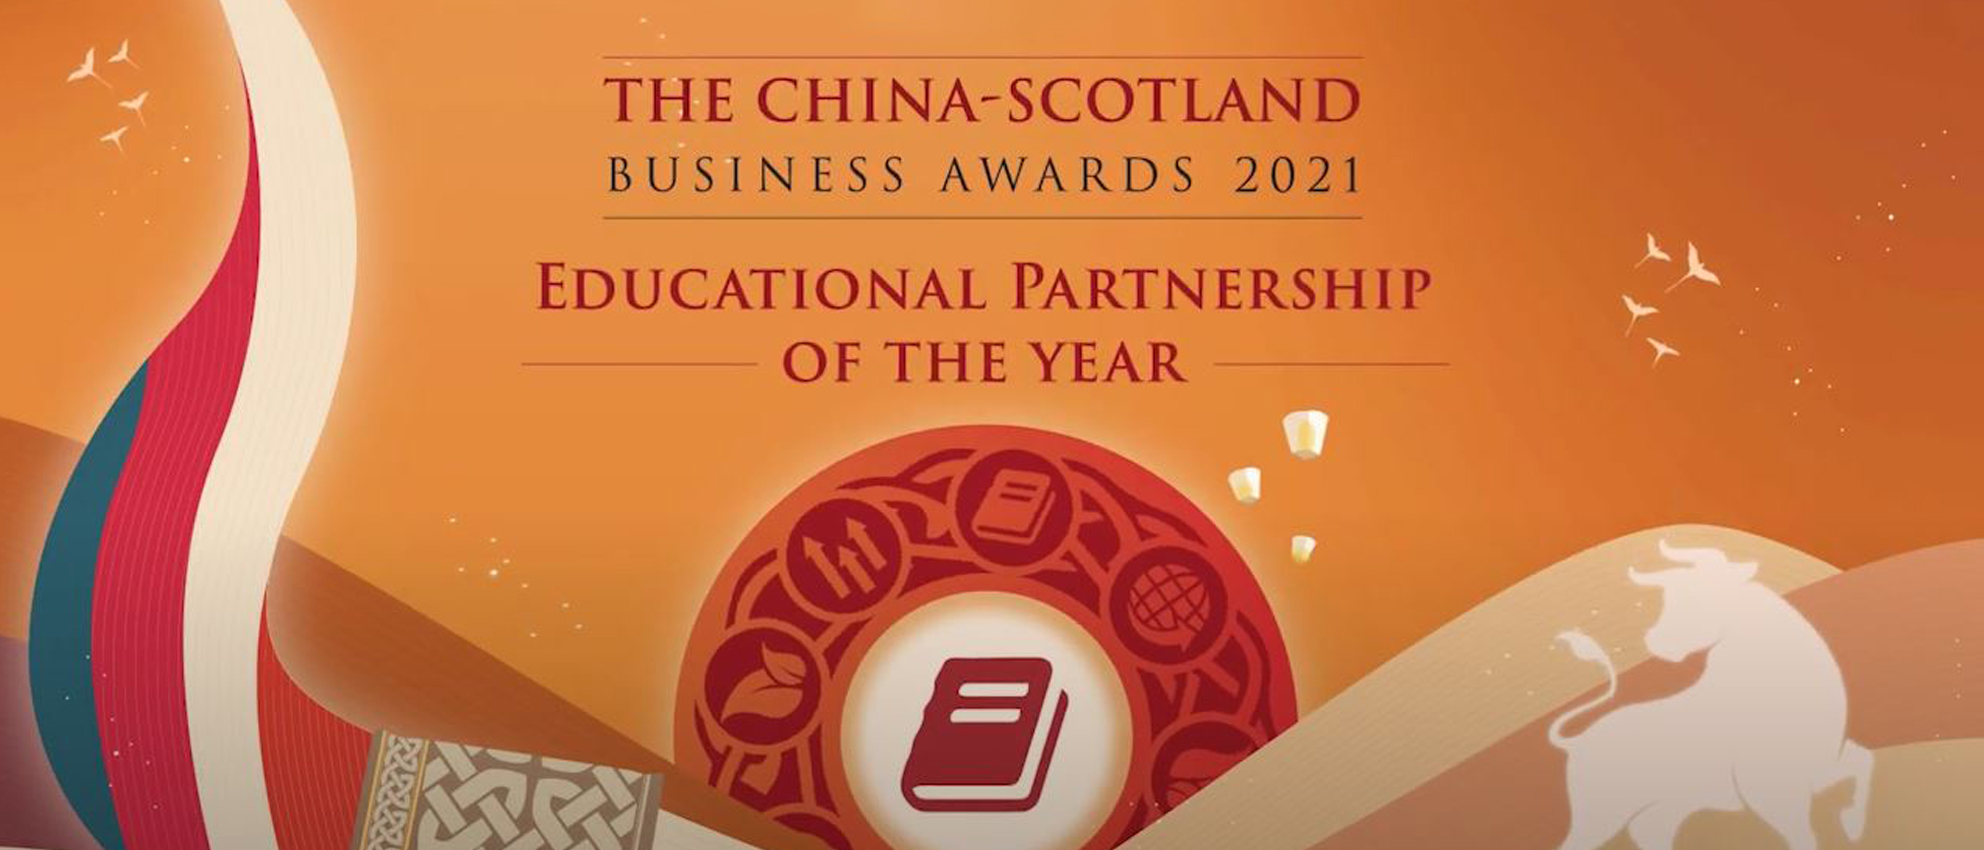 The China-Scotland Business Awards 2021 branding - displaying text Education Partnership of the Year